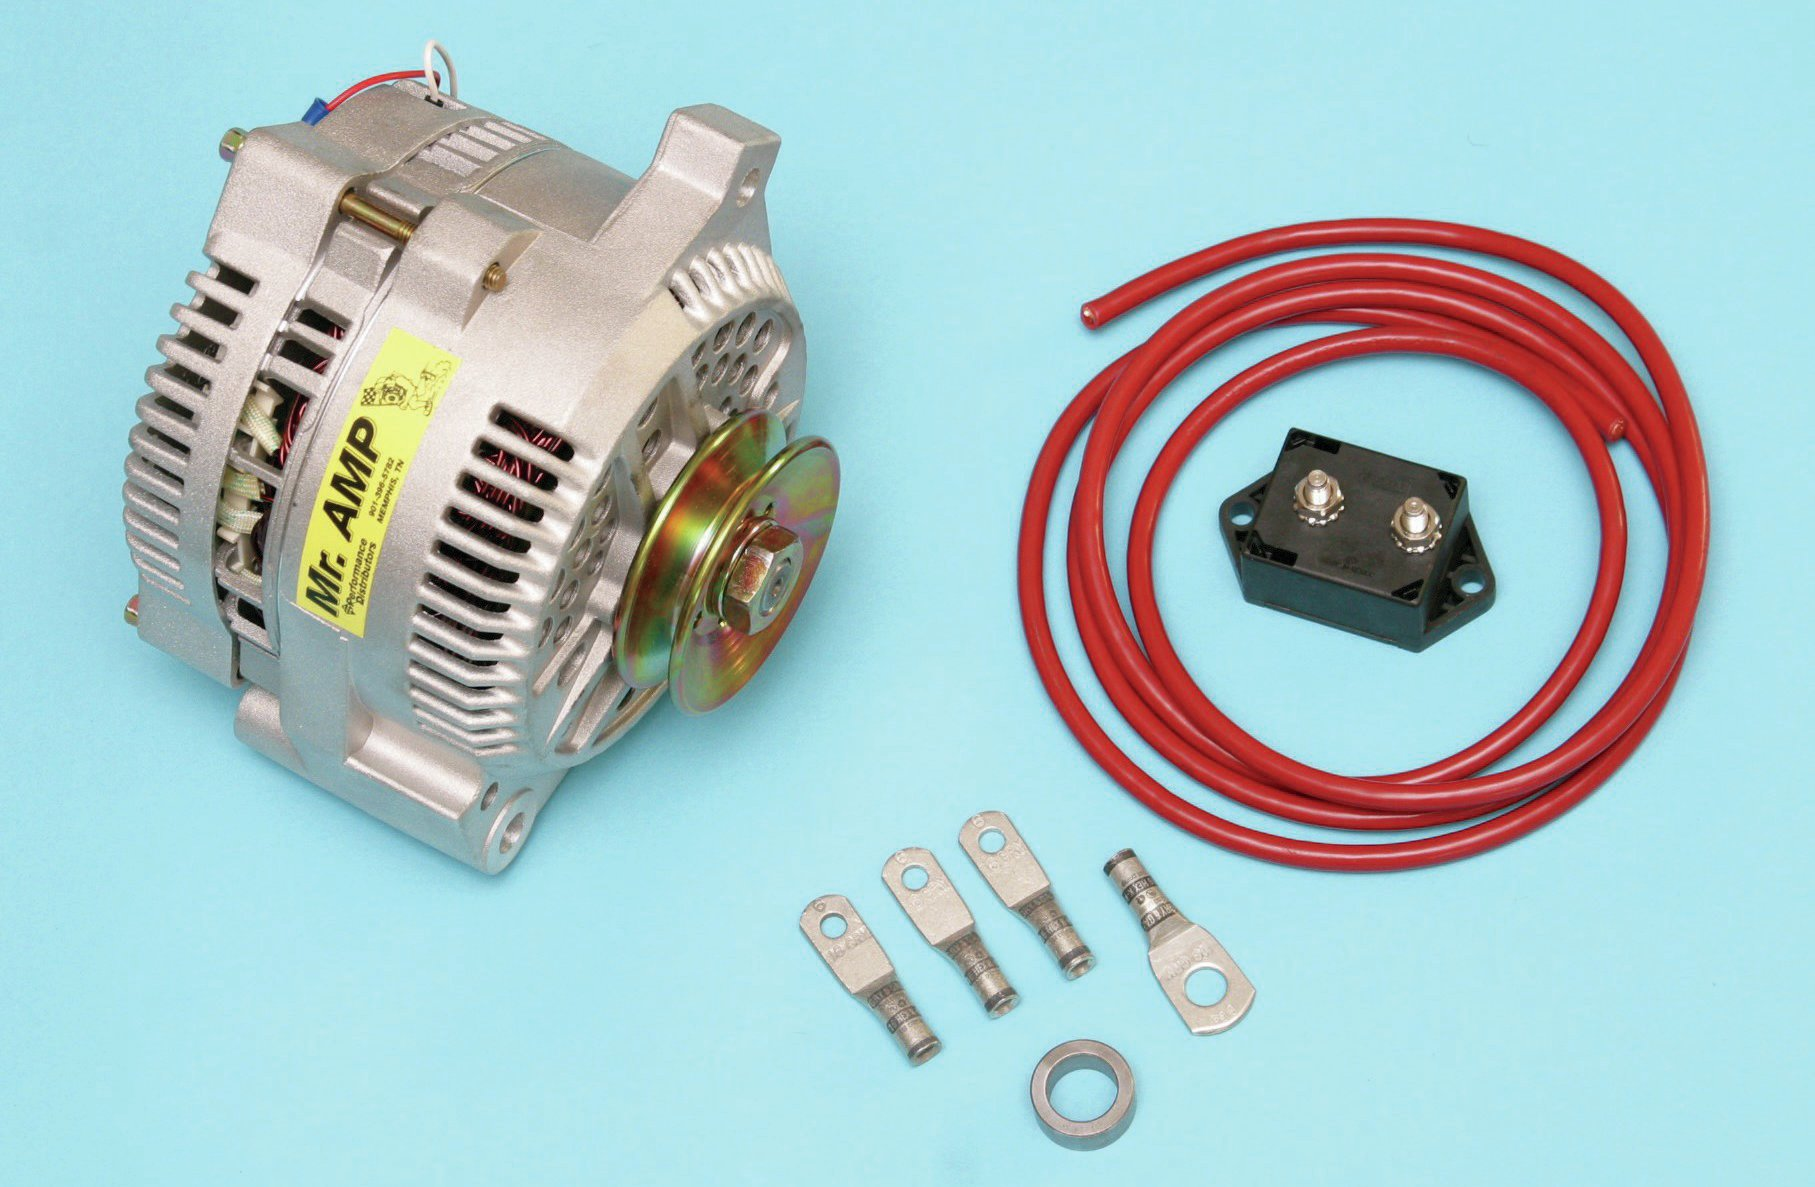 hight resolution of  how to identify and select ford alternators ford g alternator plug wiring diagram on ford ranger